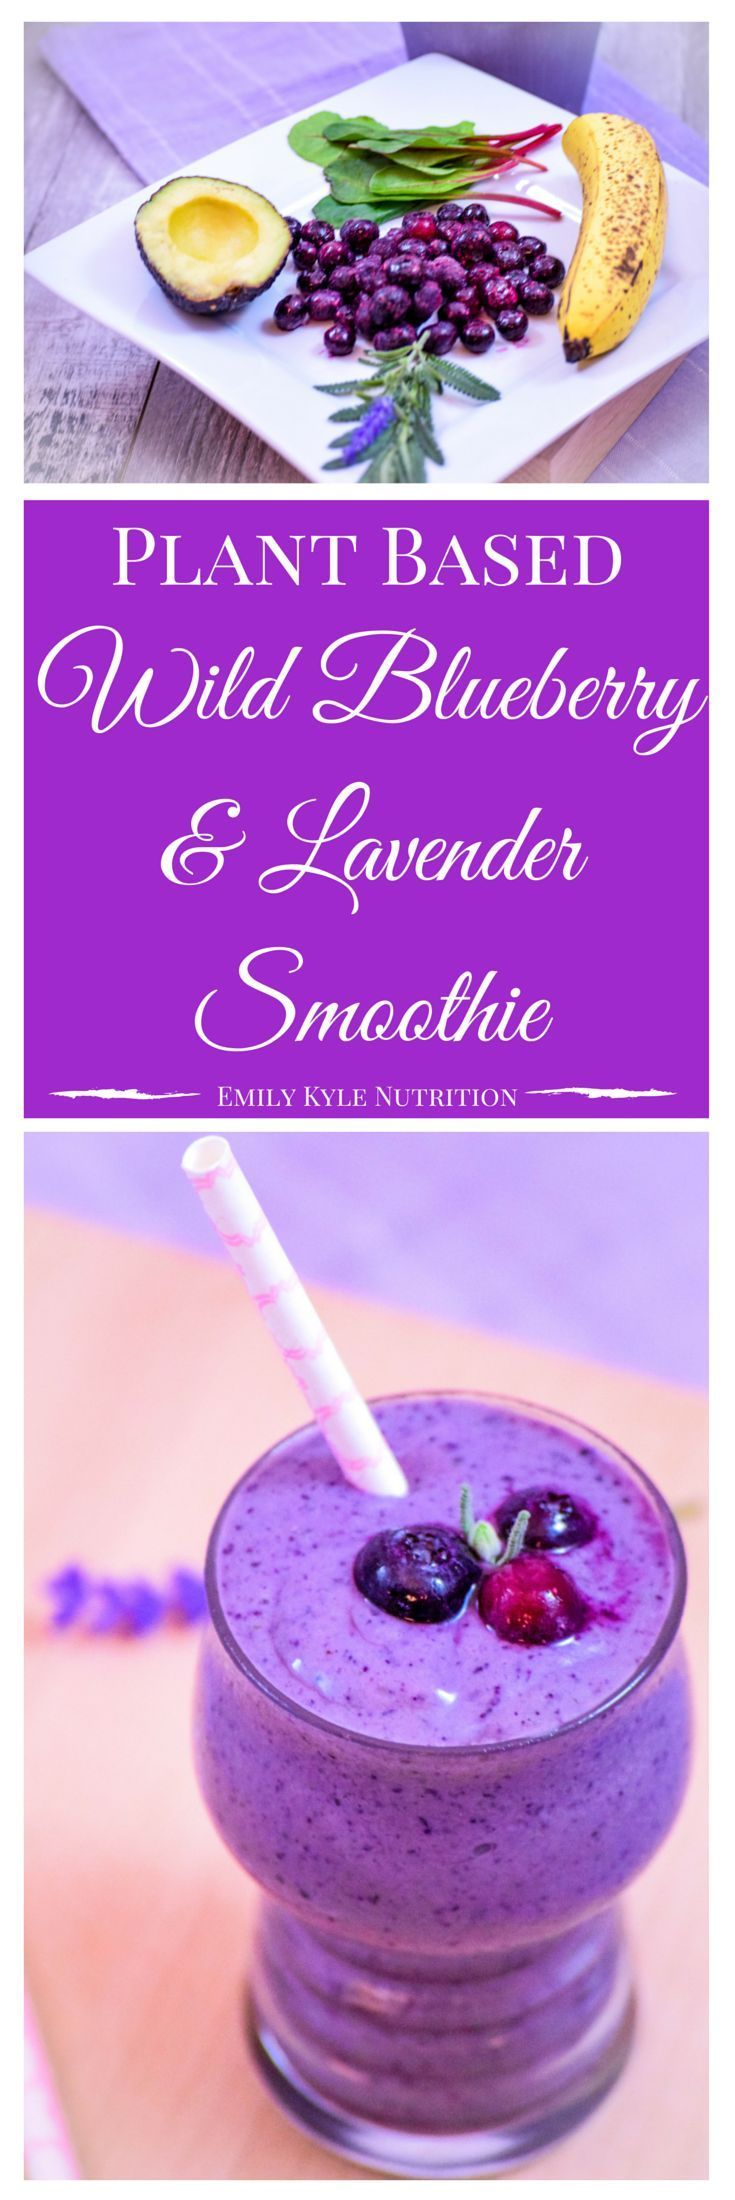 Take a moment to whip up this Wild Blueberry & Lavender Smoothie to enjoy a few minutes of stress relief from these amazing all natural, plant-based ingredients that will help to calm your mind, soothe your body, and relax your soul.